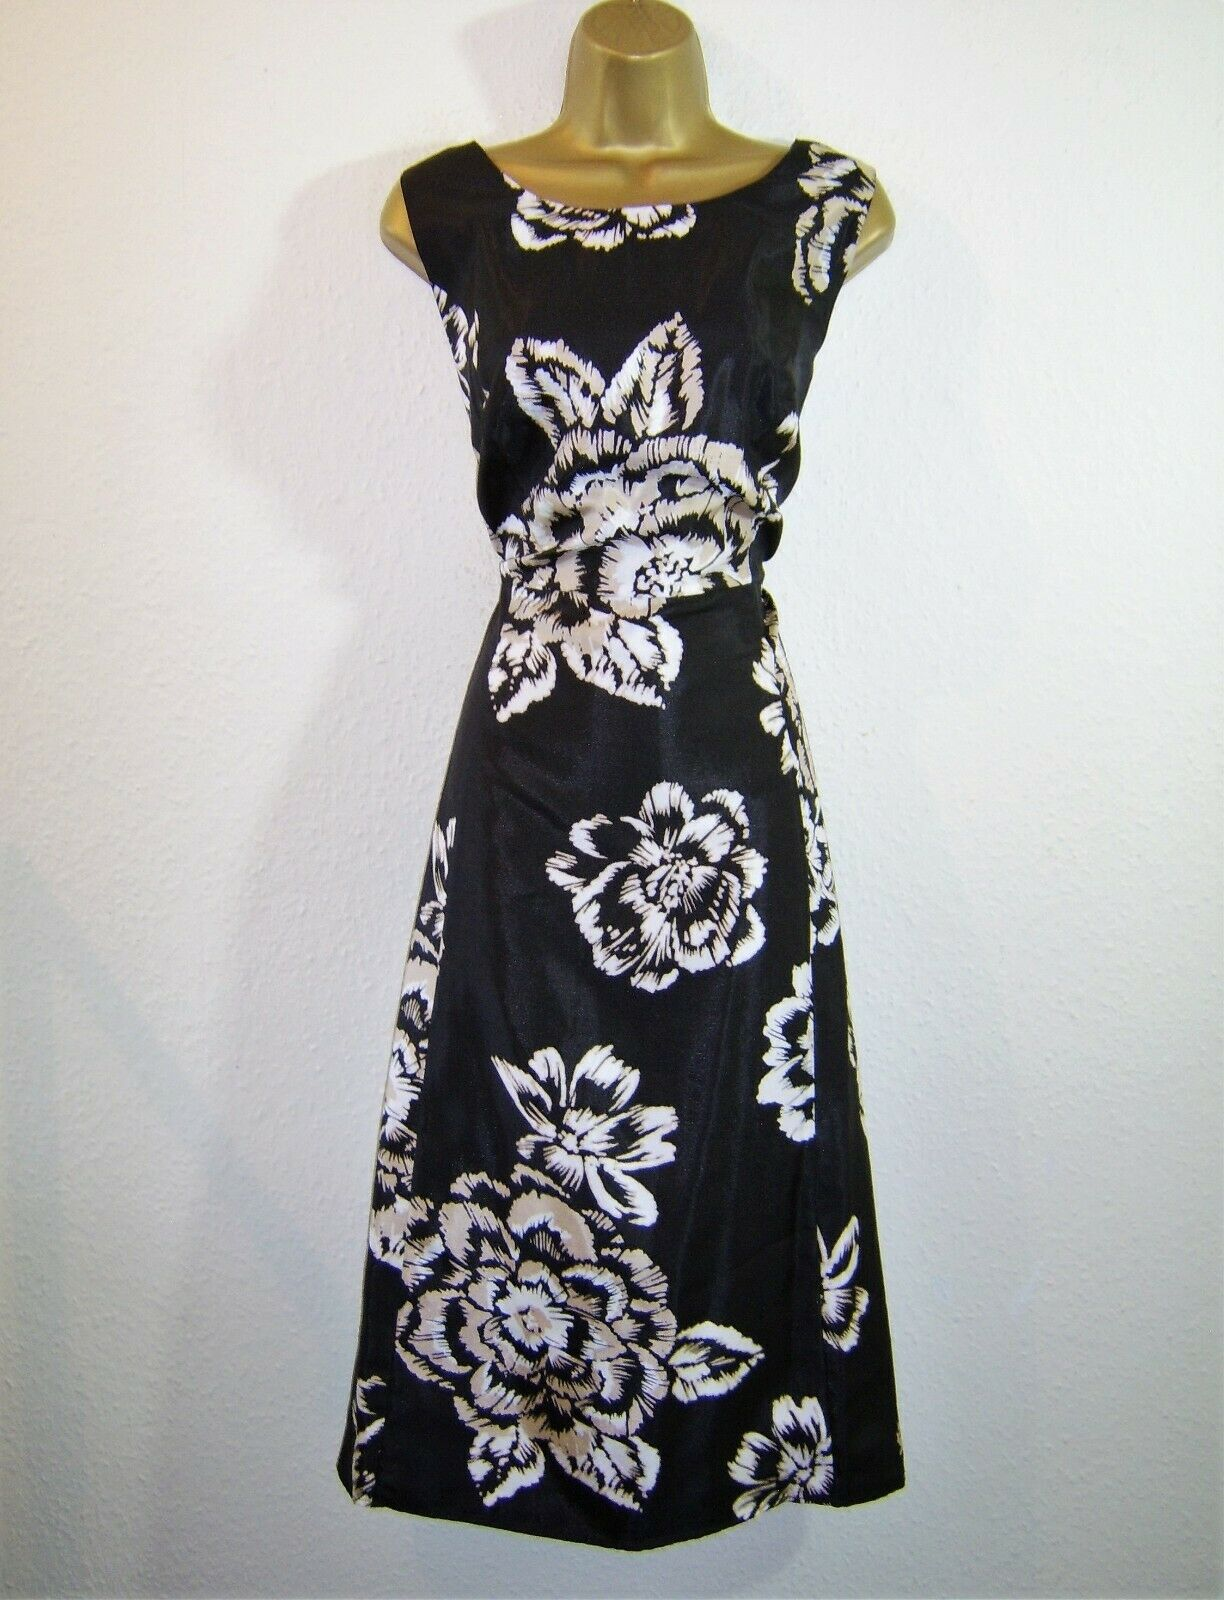 BEAUTIFUL BLACK CREAM BEIGE FIT AND FLARE EVENING PARTY OCCASION DRESS SIZE 18